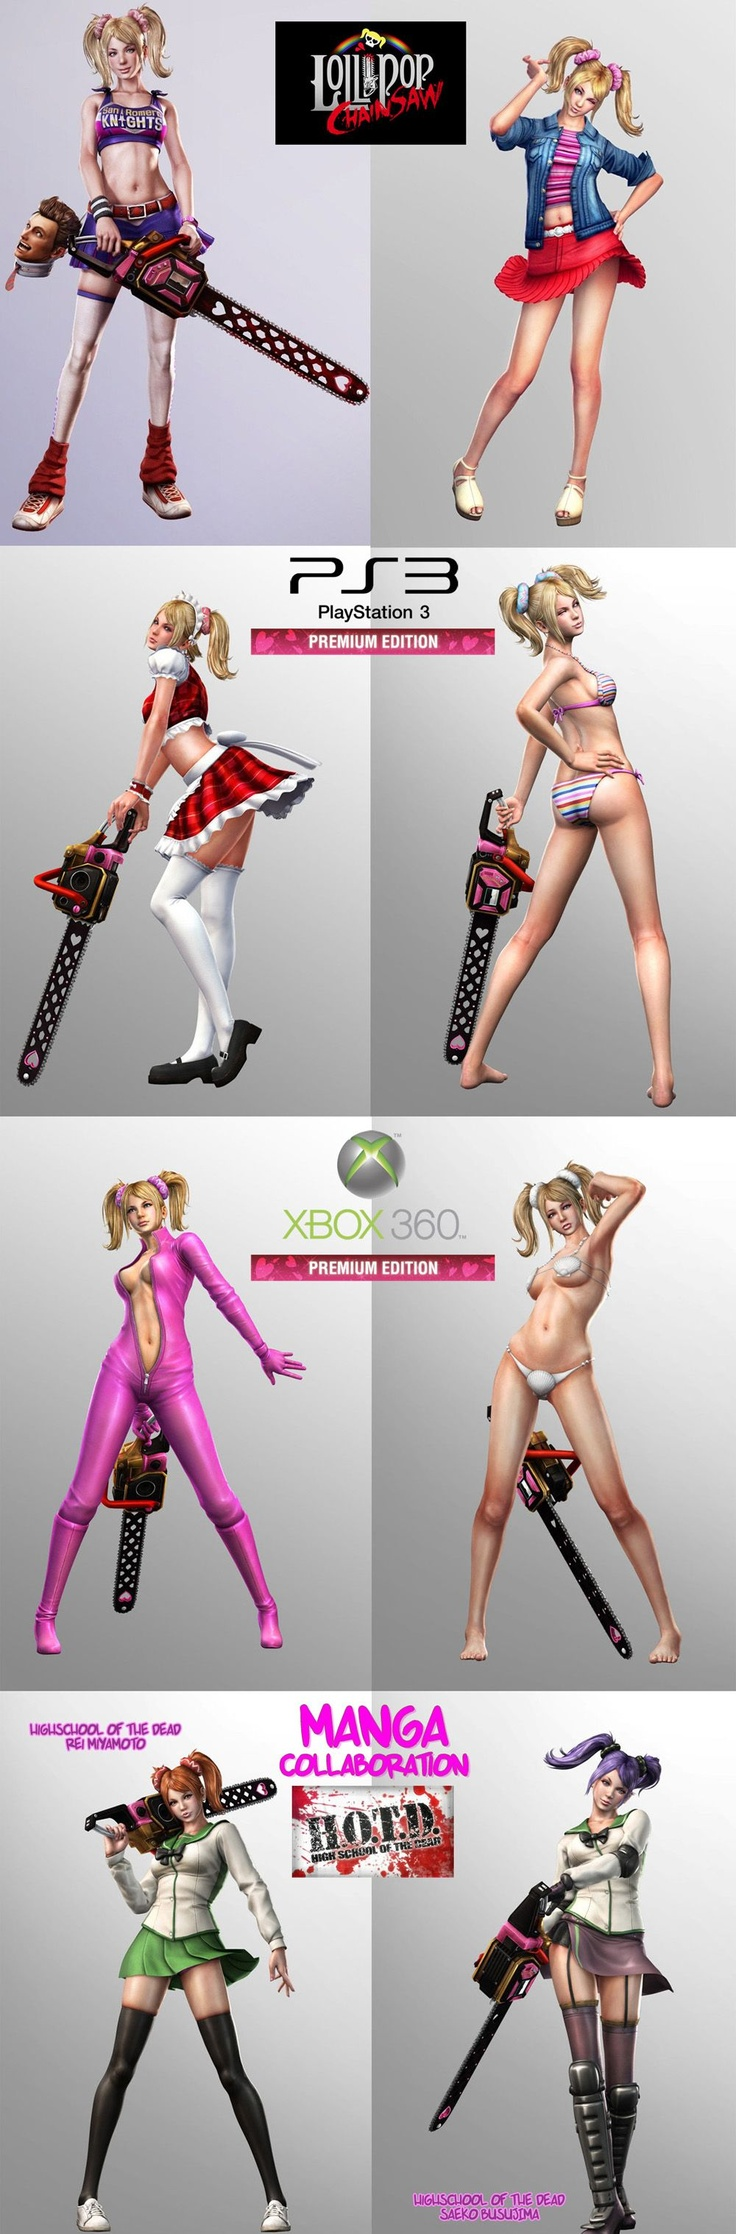 Lollipop Chainsaw Juliet Costumes DLC Downloadable Content  (Premium Edition, Playstation 3, Xbox 360, Manga Collaboration)